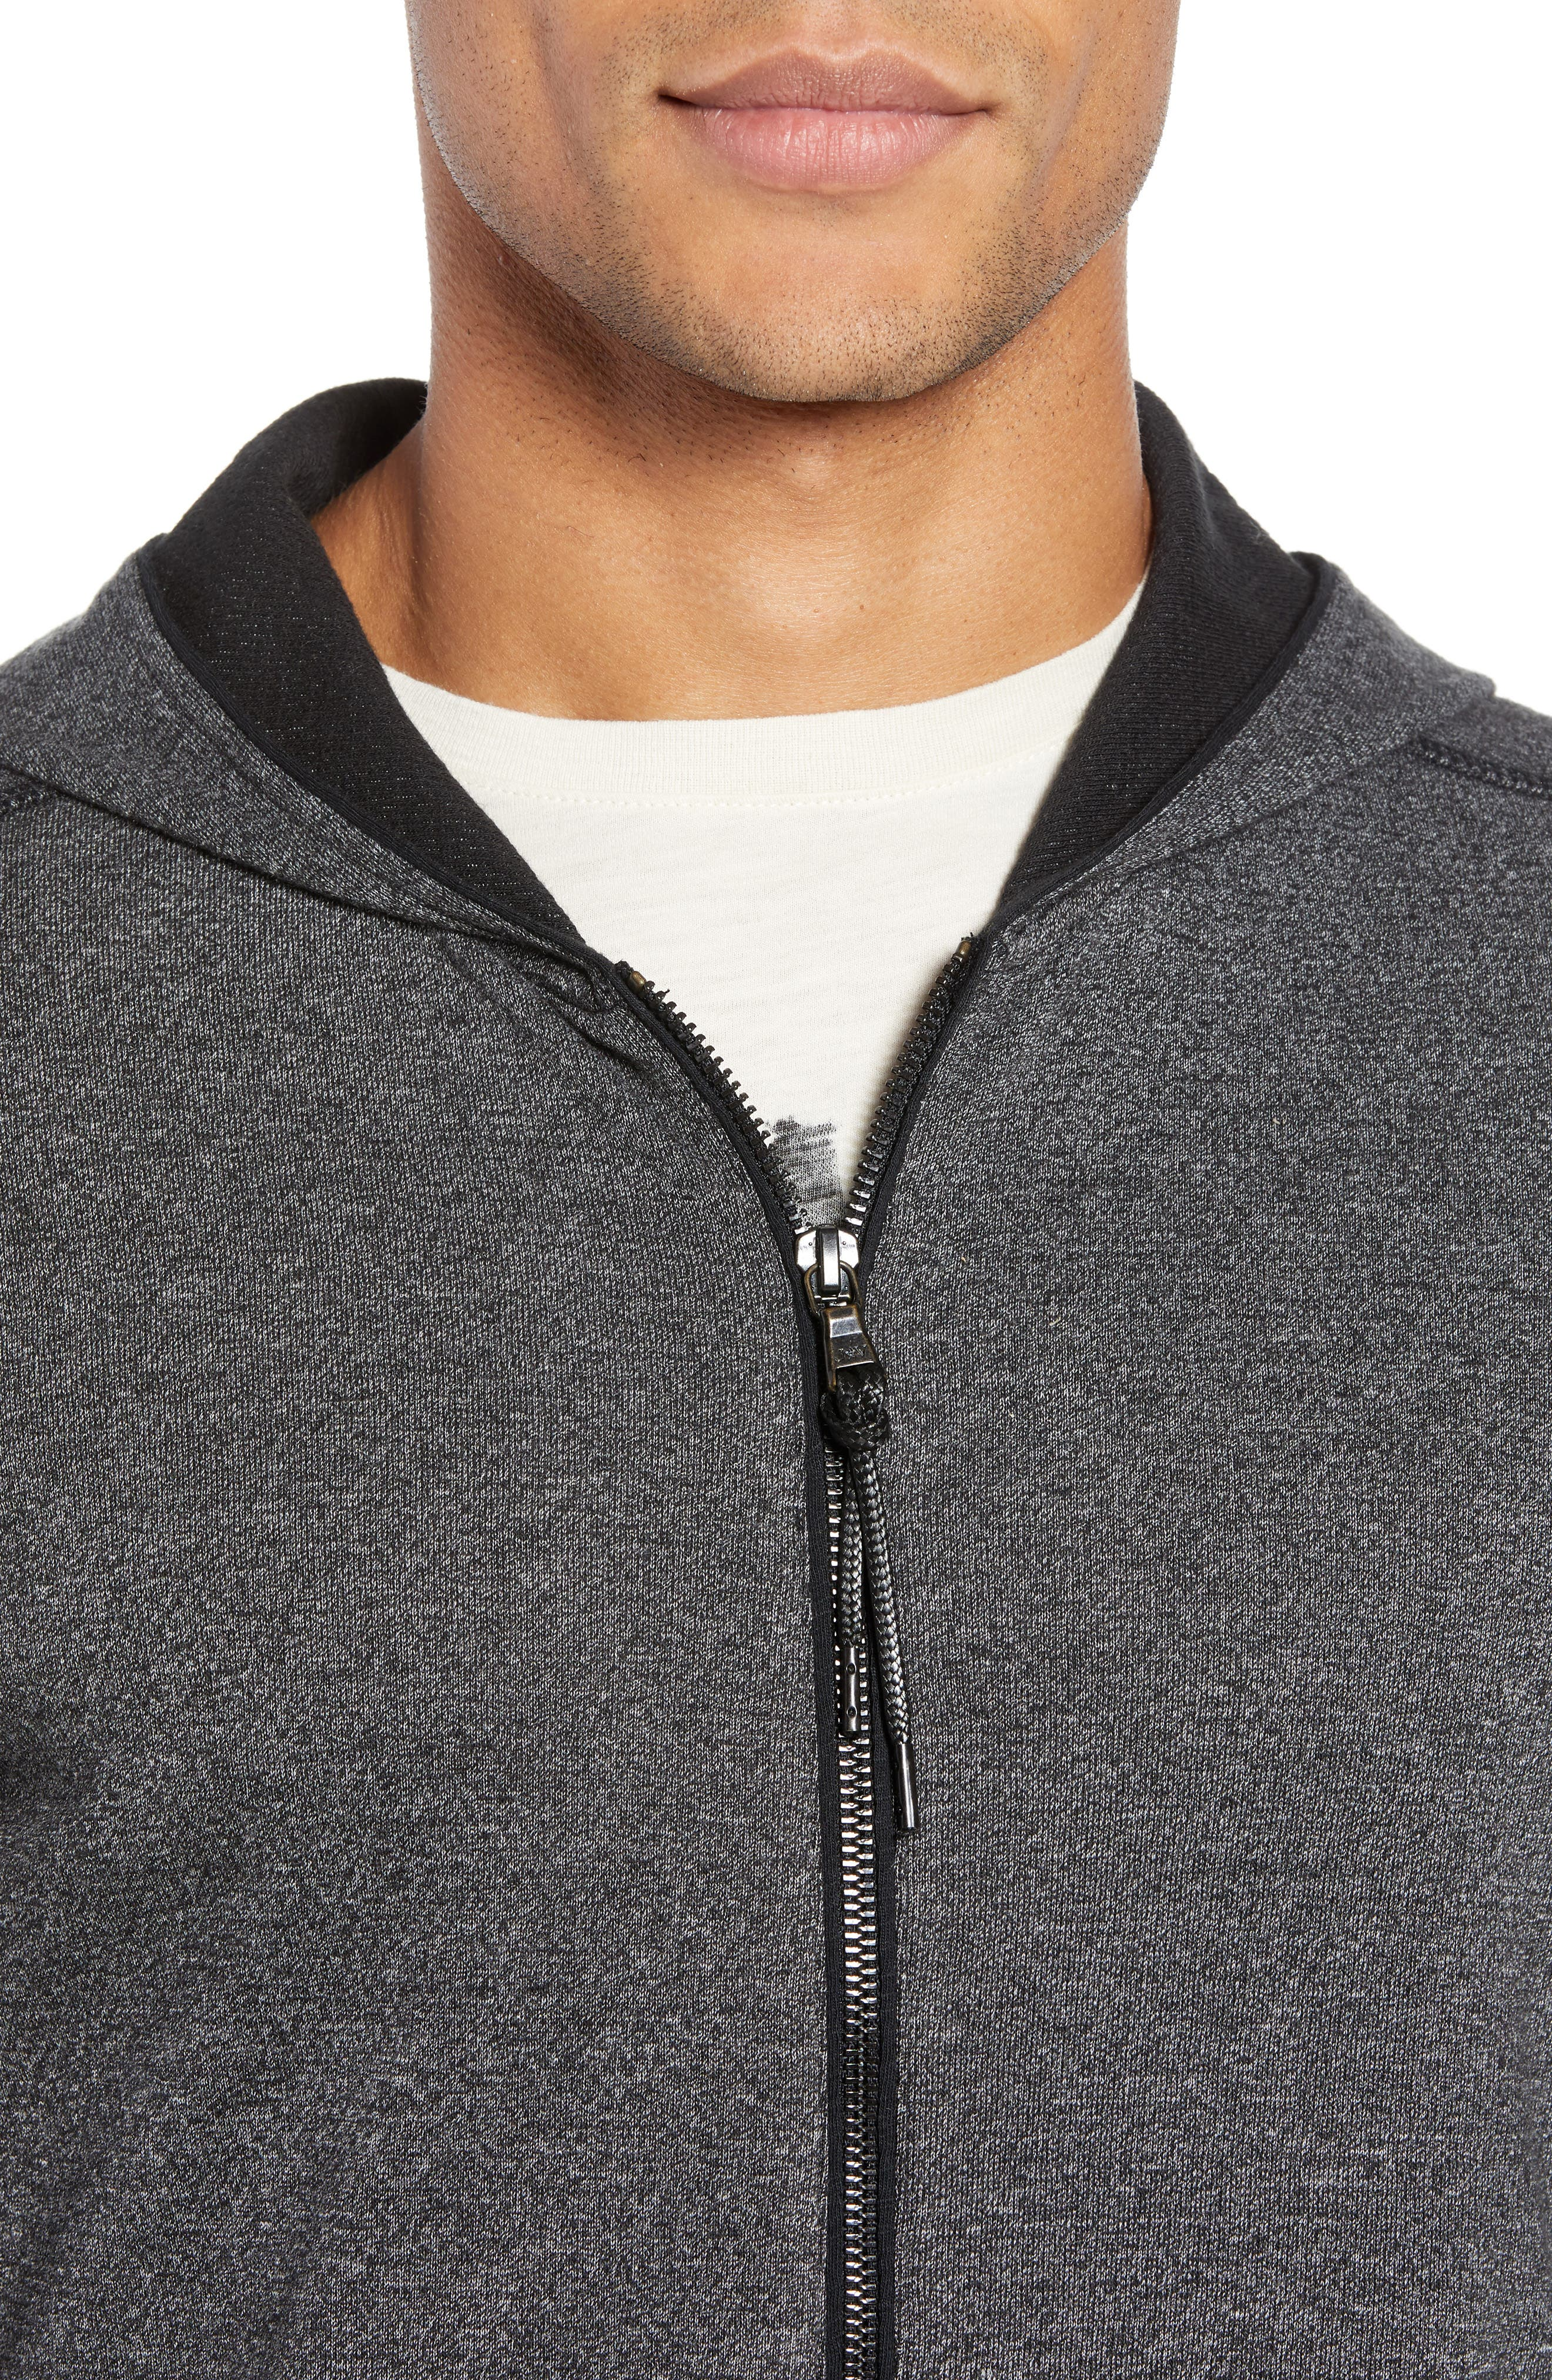 Doubleknit Zip Hoodie,                             Alternate thumbnail 4, color,                             CHARCOAL HEATHER